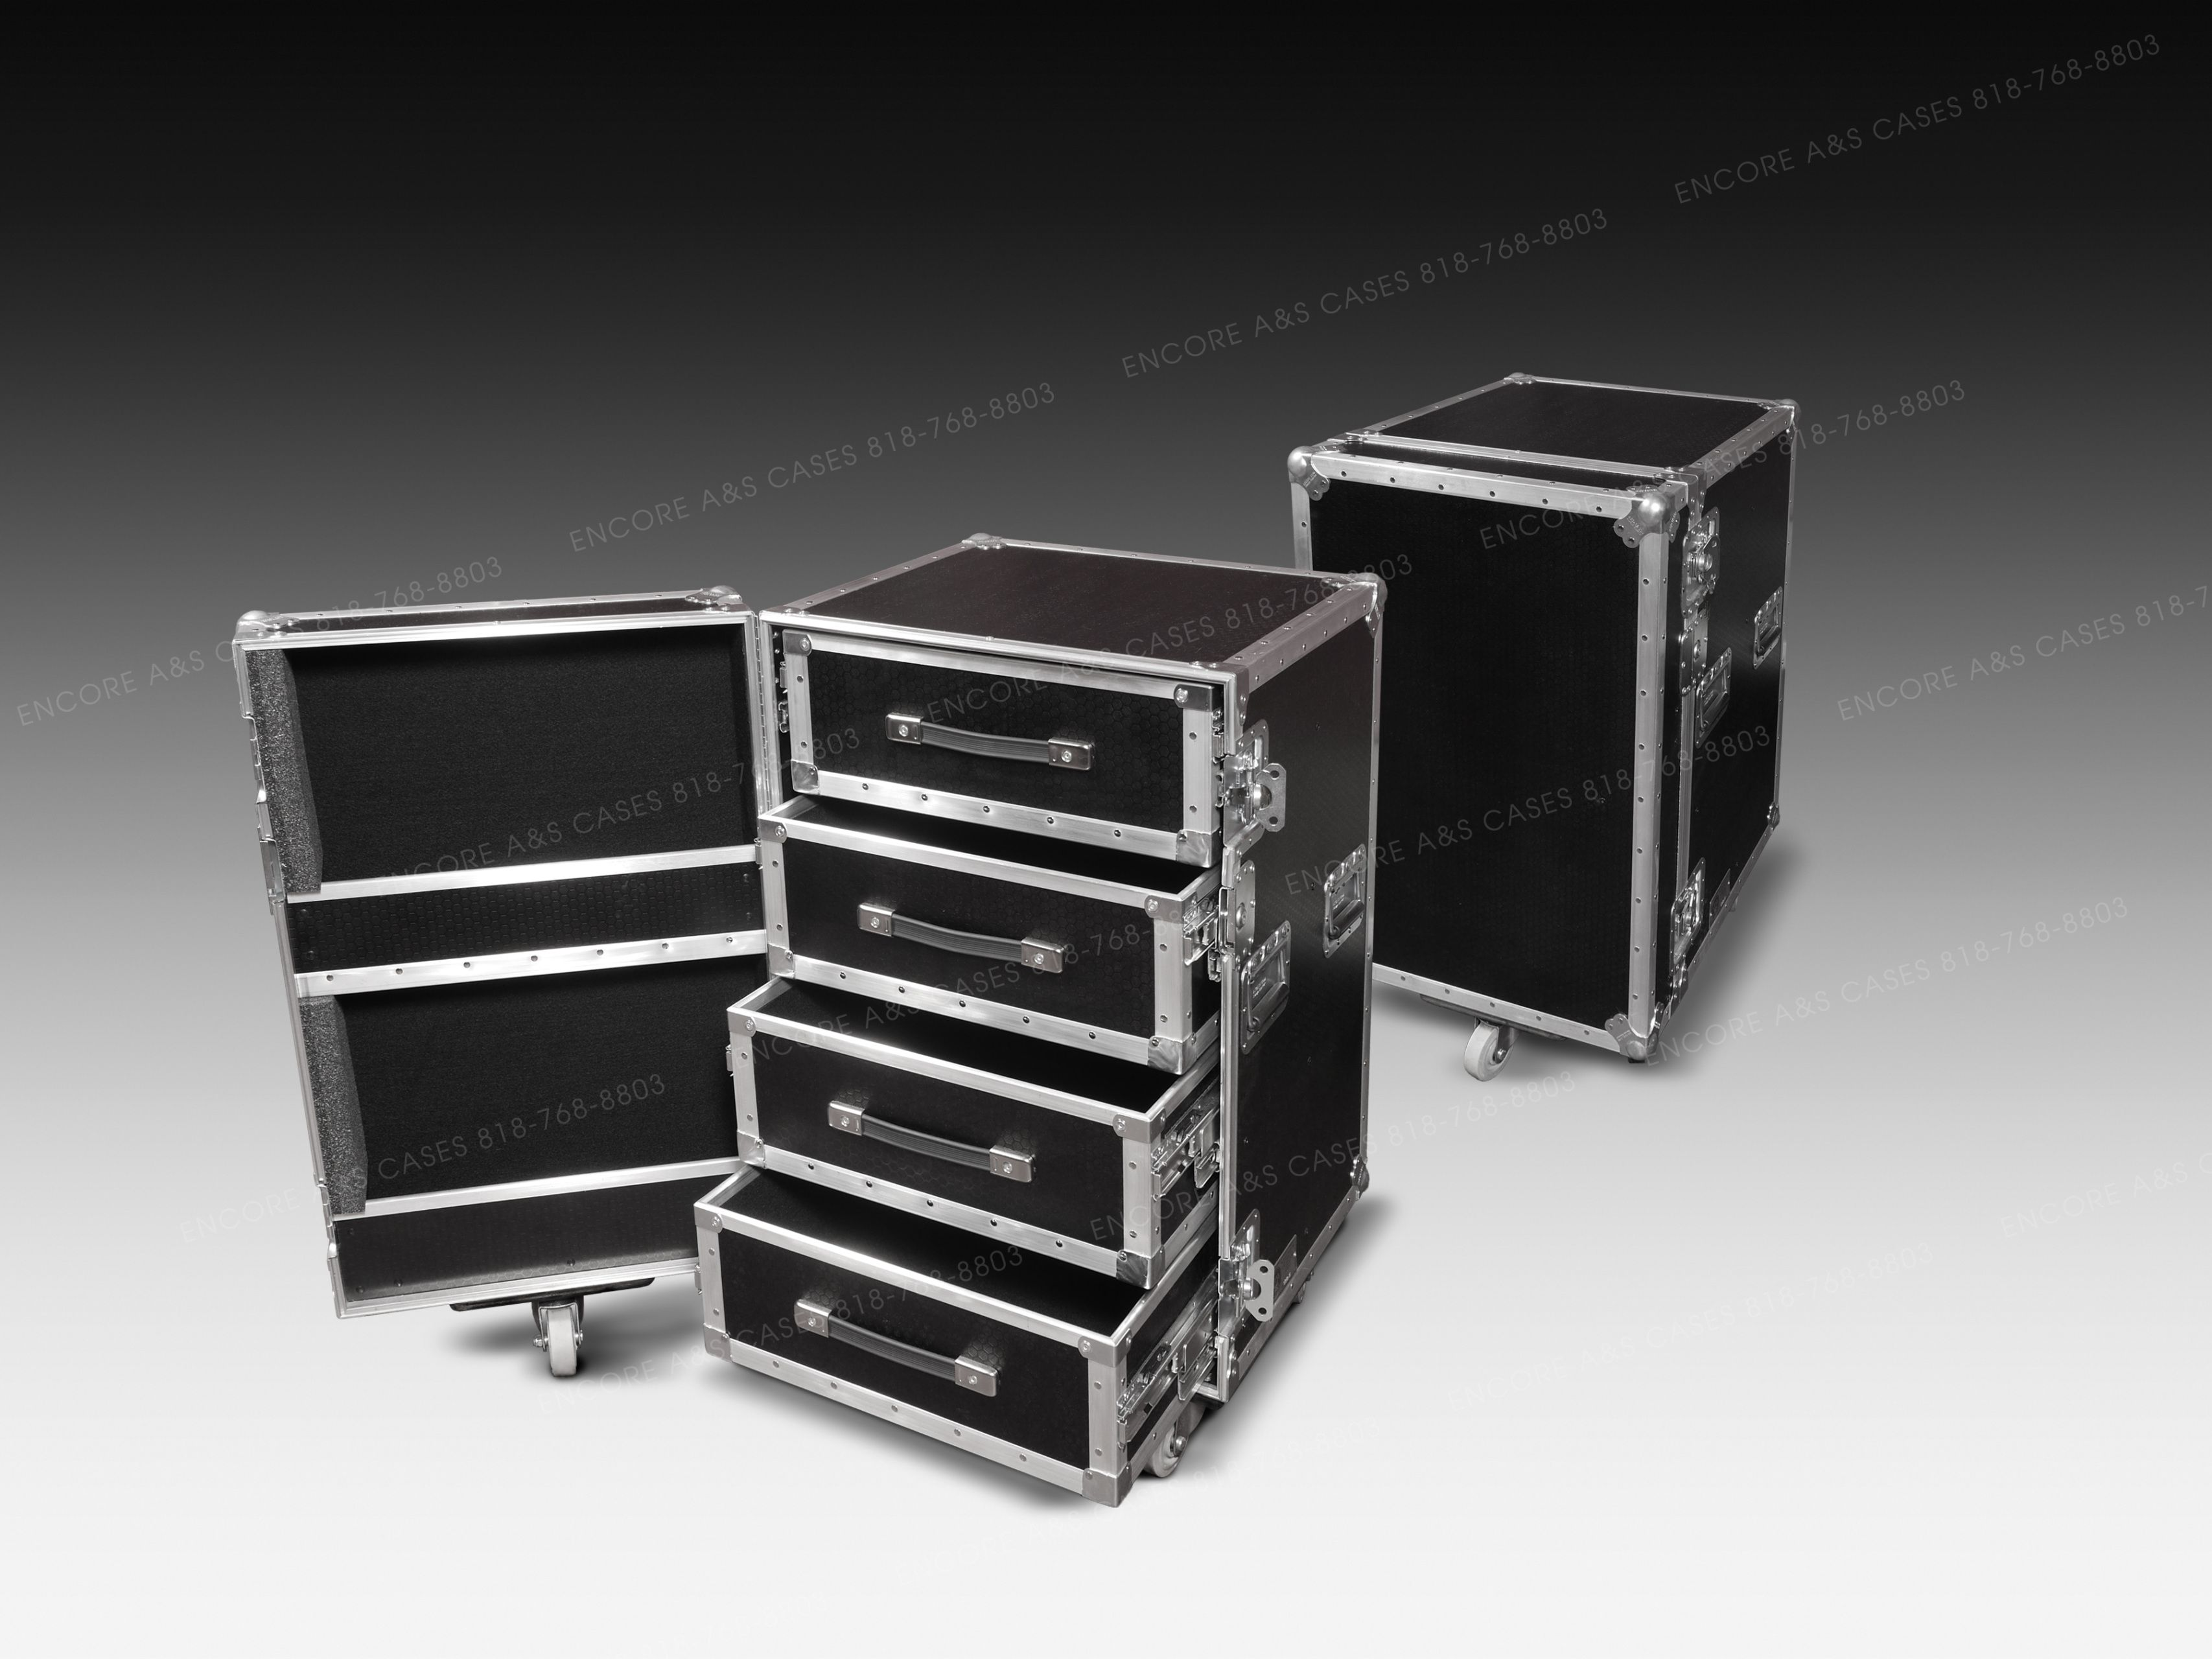 Encore Cases Specializes In Customized Case Solutions Rack Cases Workboxes Plasma Cases Cases For Magicians Instrum Work Boxes Equipment Cases Road Cases